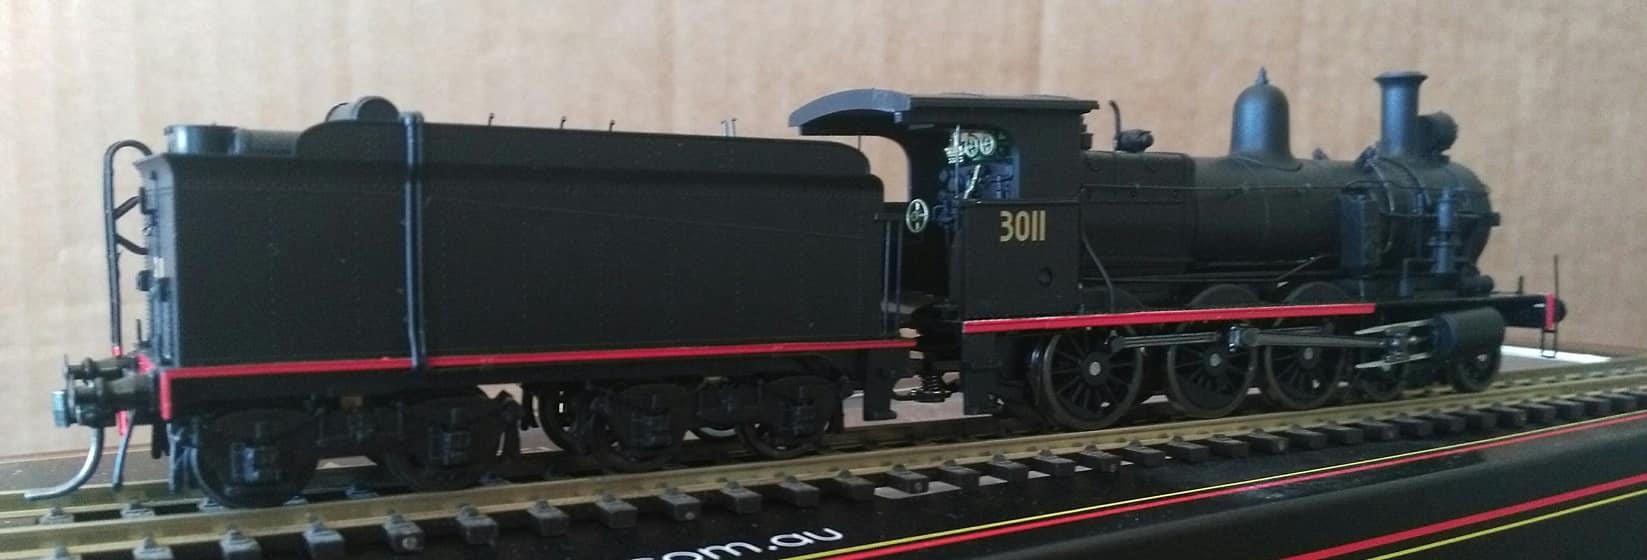 Wombat Models HO Scale NSWGR C30T Class Locomotive #3011 with Superheated  Boiler